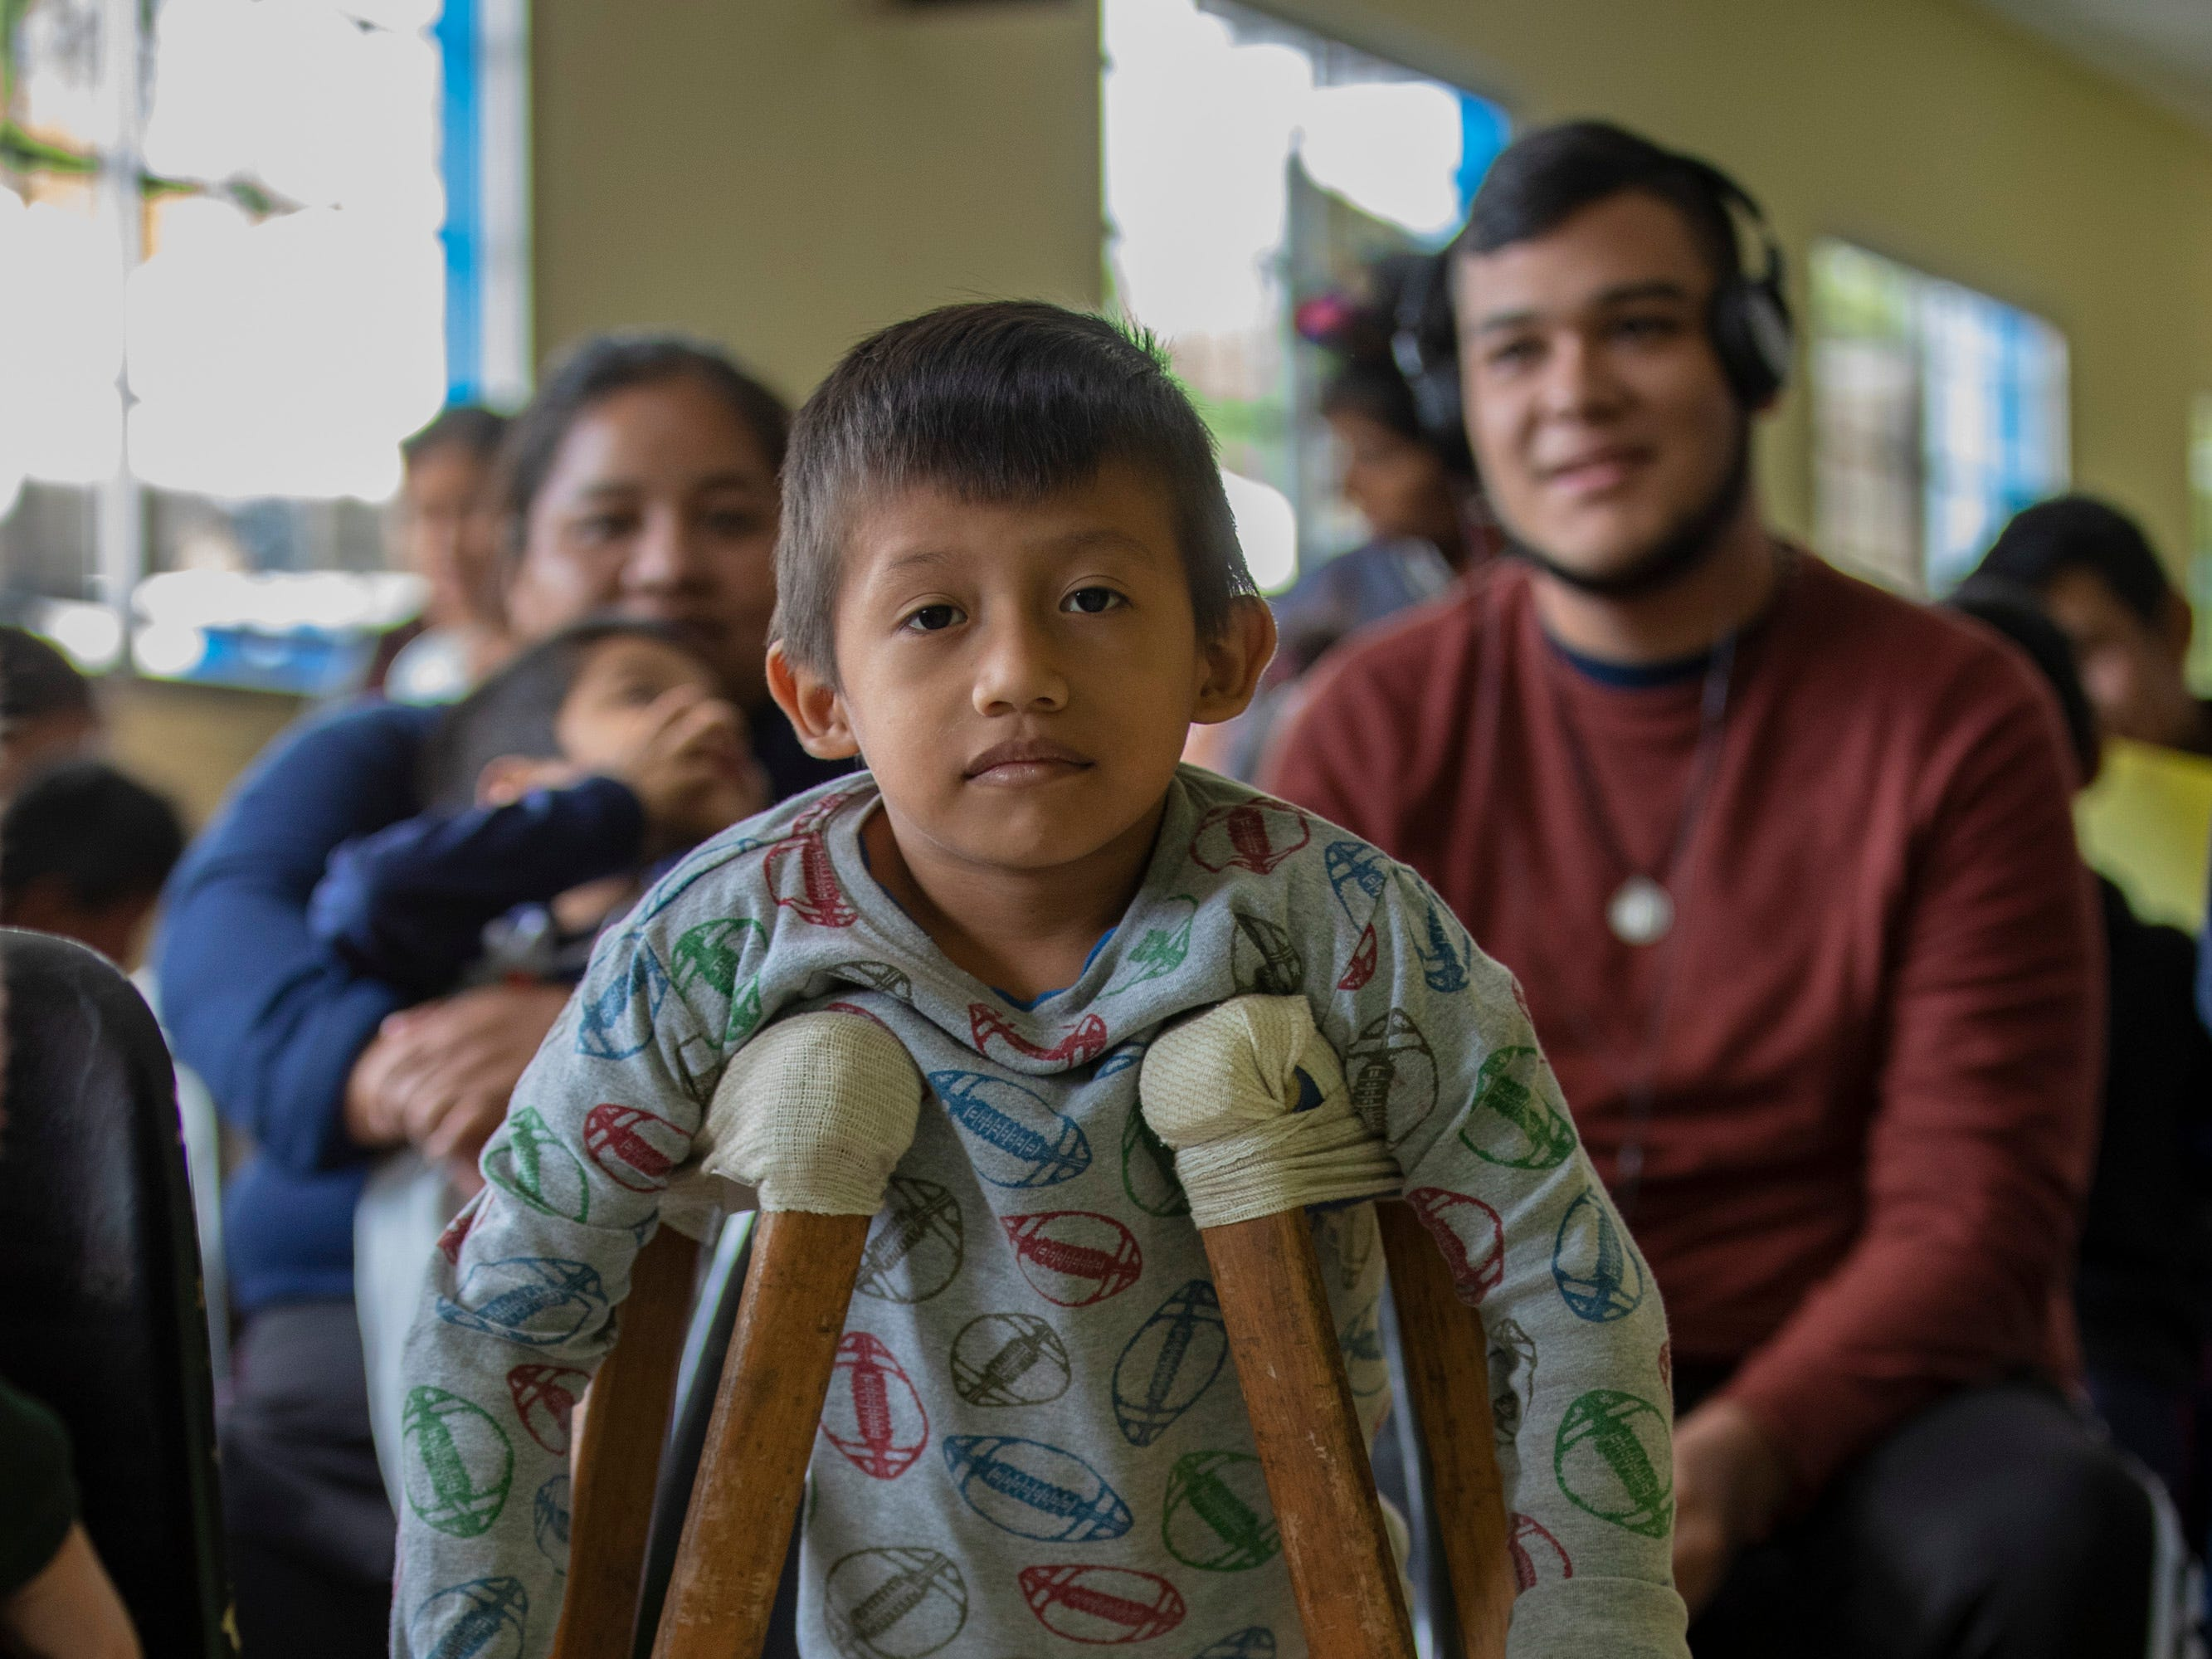 Angel Esthibon Kecinos Pedr, 7, waits with his homemade crutches in the lobby of the National Salama Hospital to see doctors about possible spine issues. Jan. 20, 2019